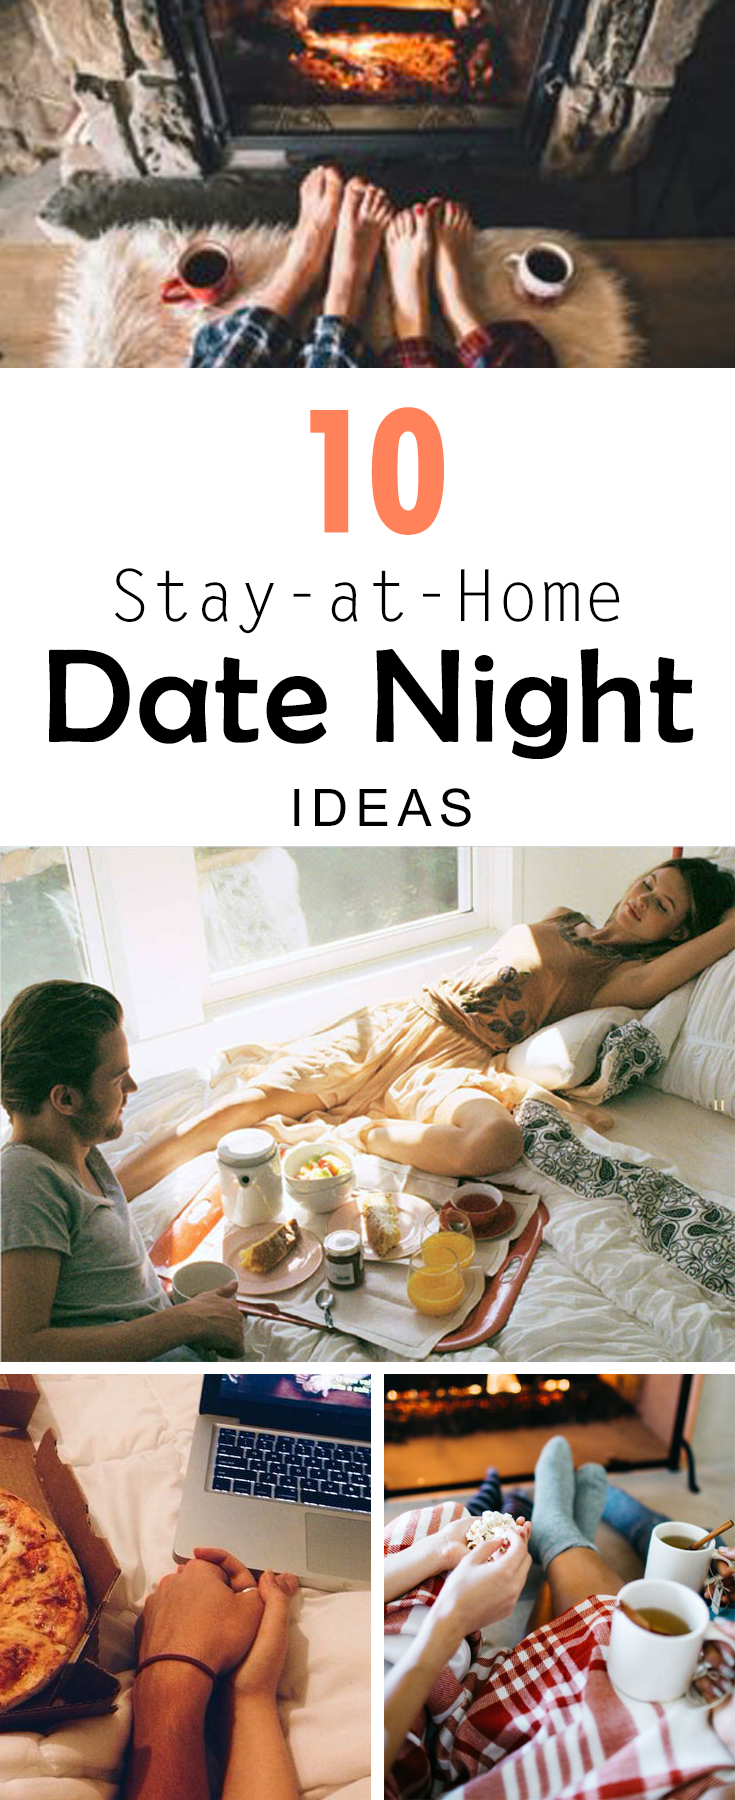 Date Night Ideas Stay Home. 21 romantic stay at home date night ...